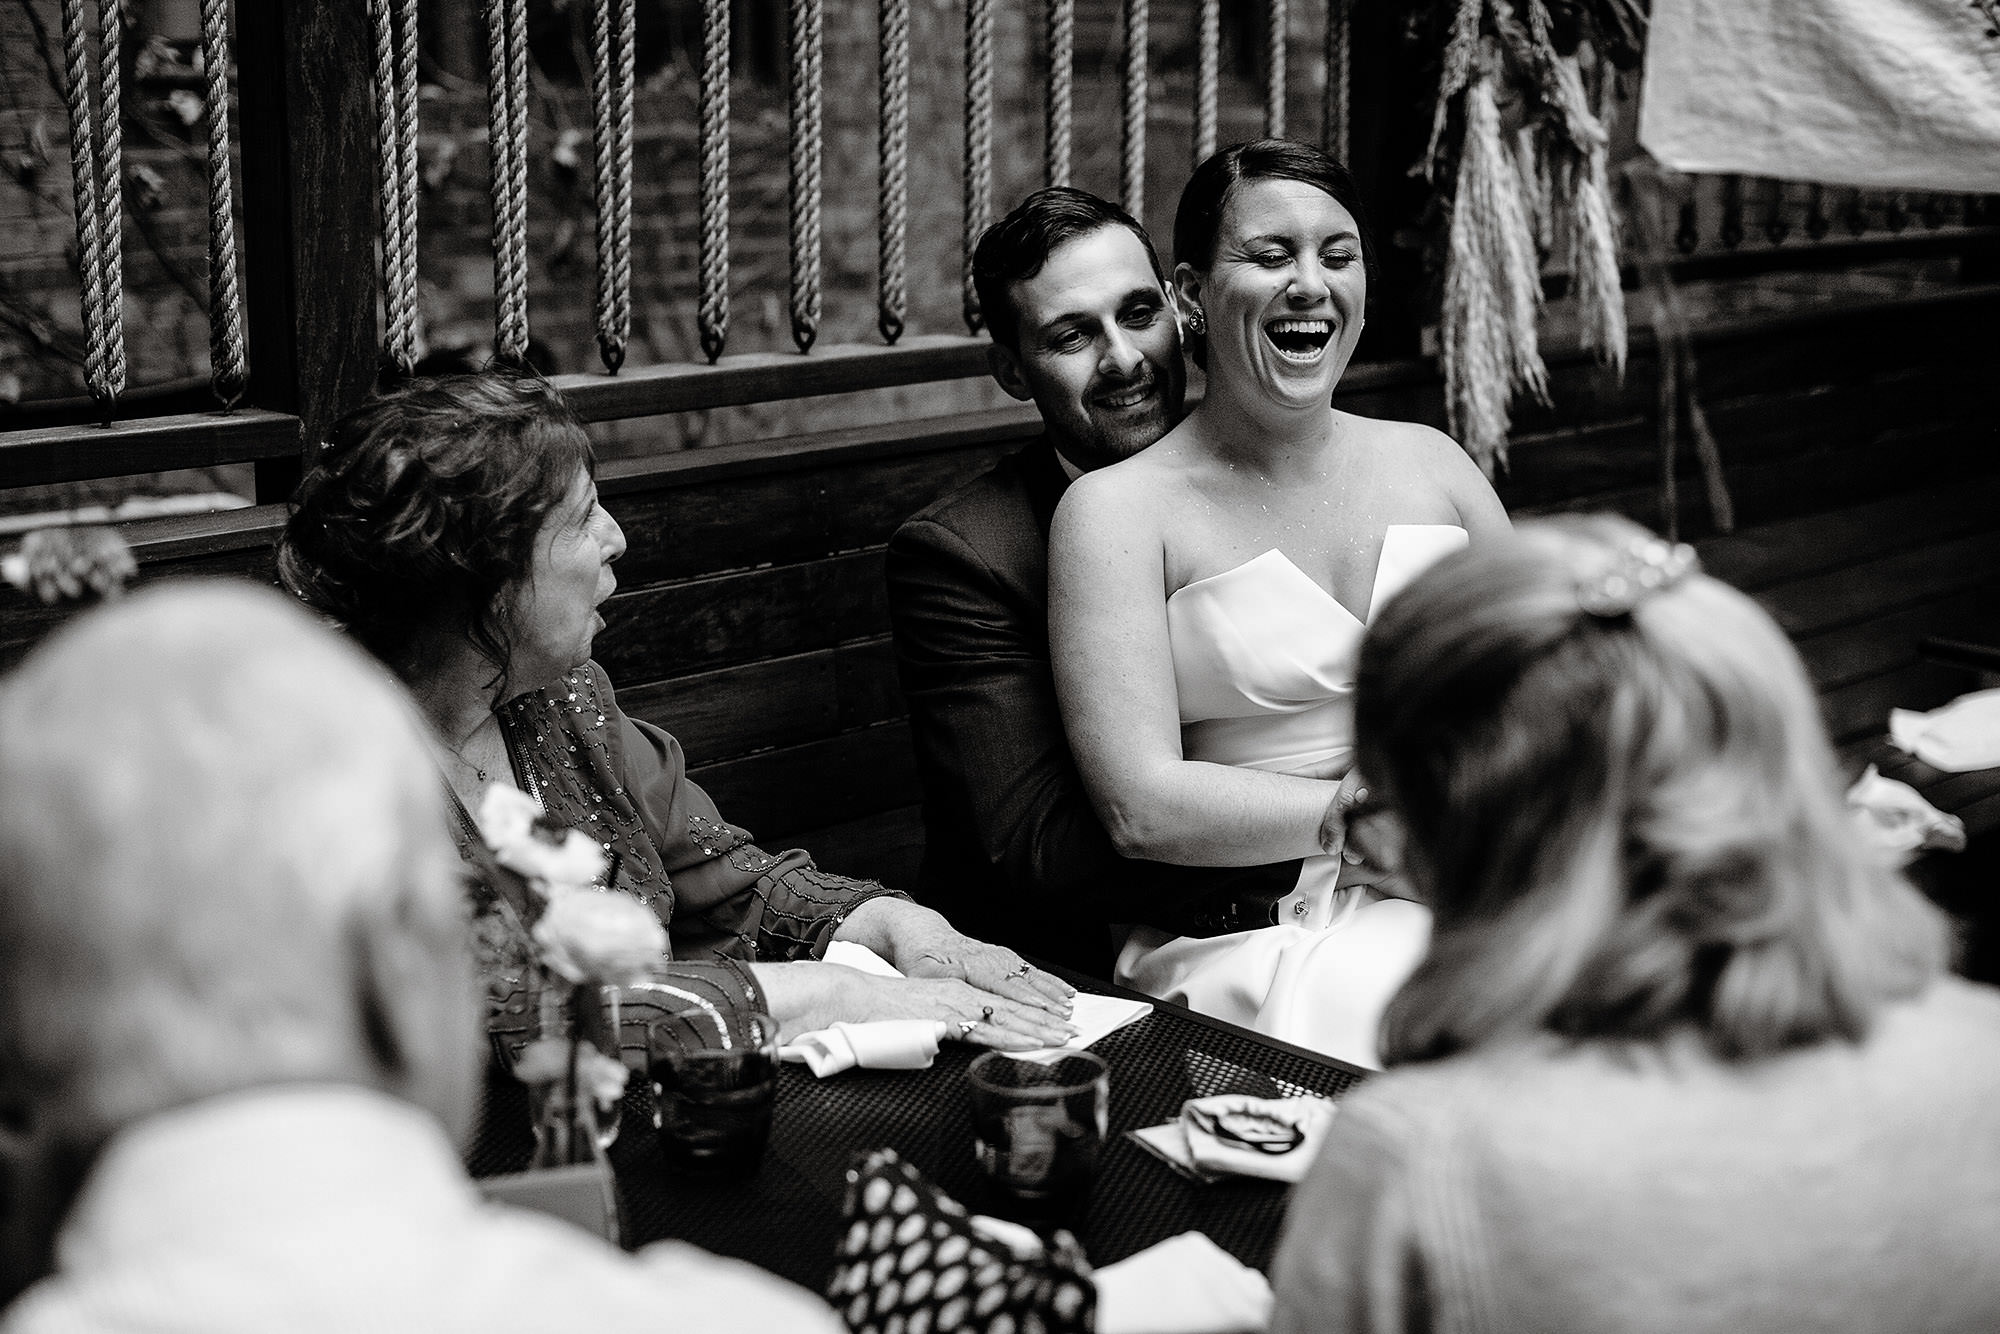 SRV Boston Wedding  I  The bride and groom laugh with guests during the cocktail hour in Boston, MA.